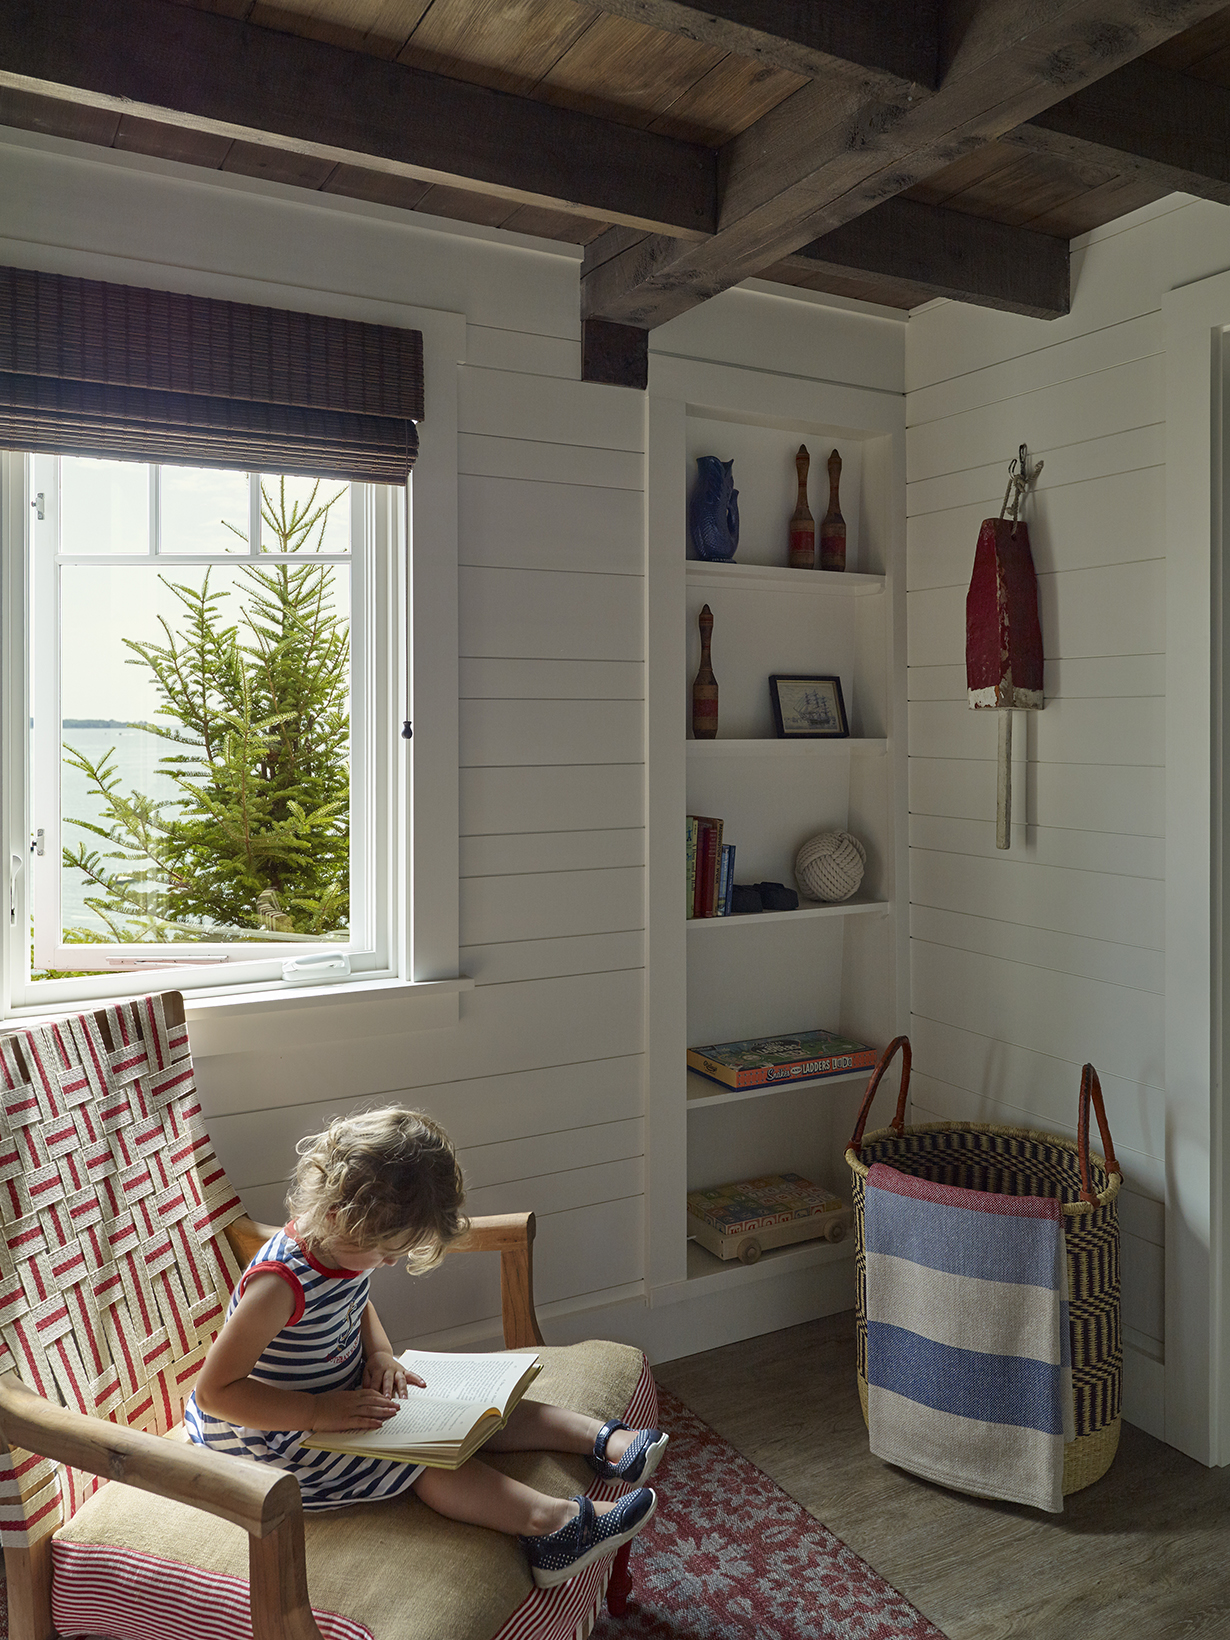 knickerbocker-group-project-maine-cottage-bunkhouse